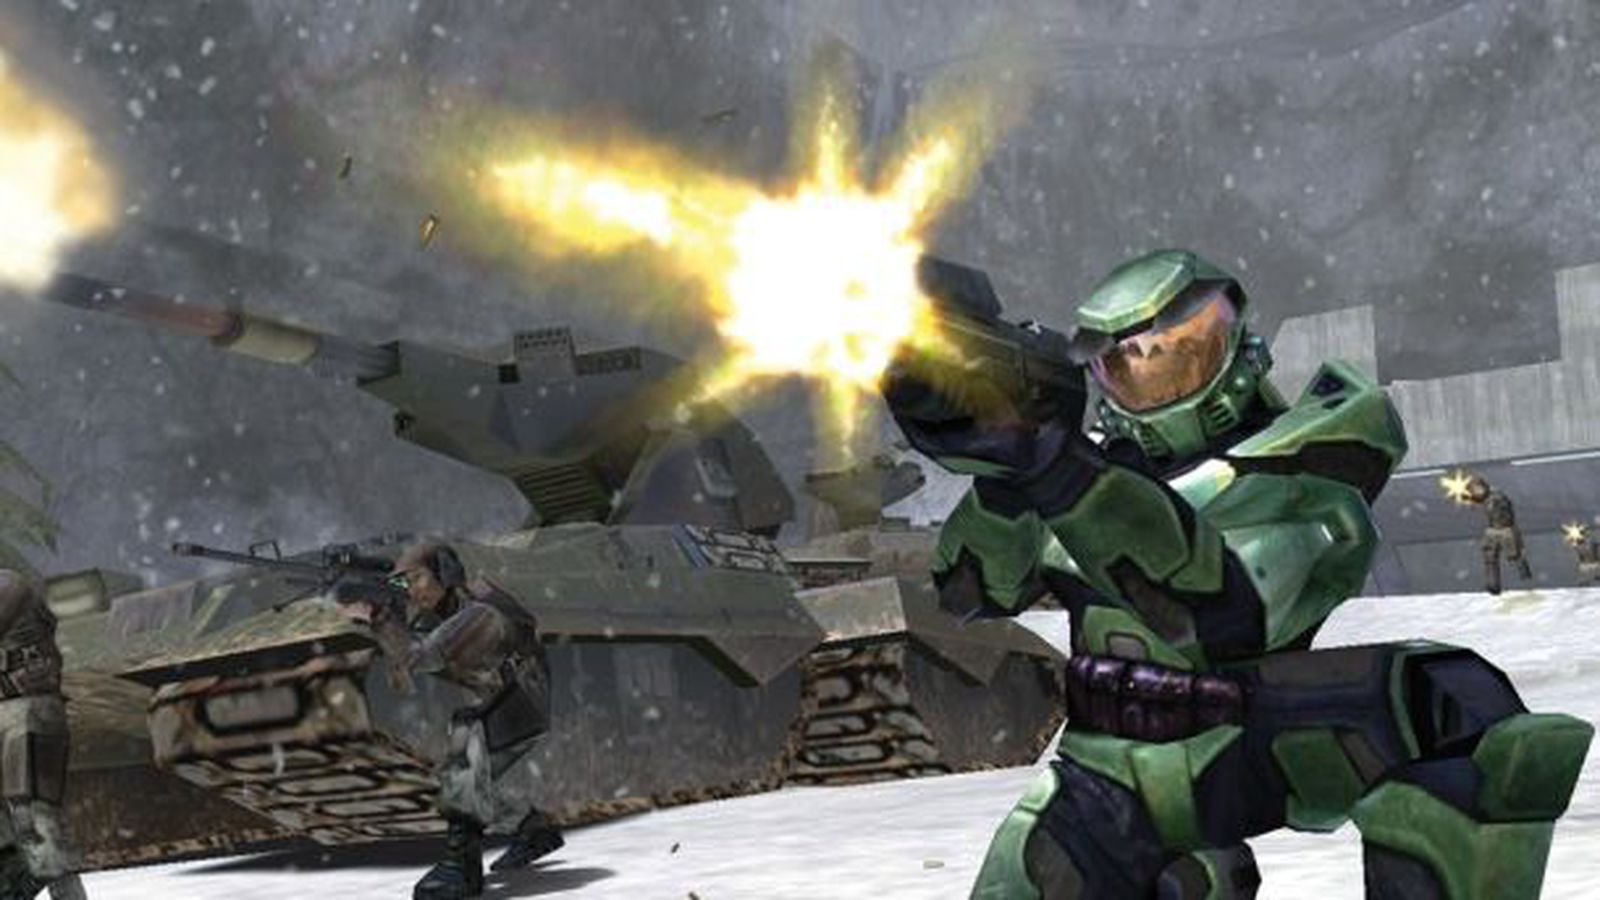 halo combat evolved multiplayer will survive in the face